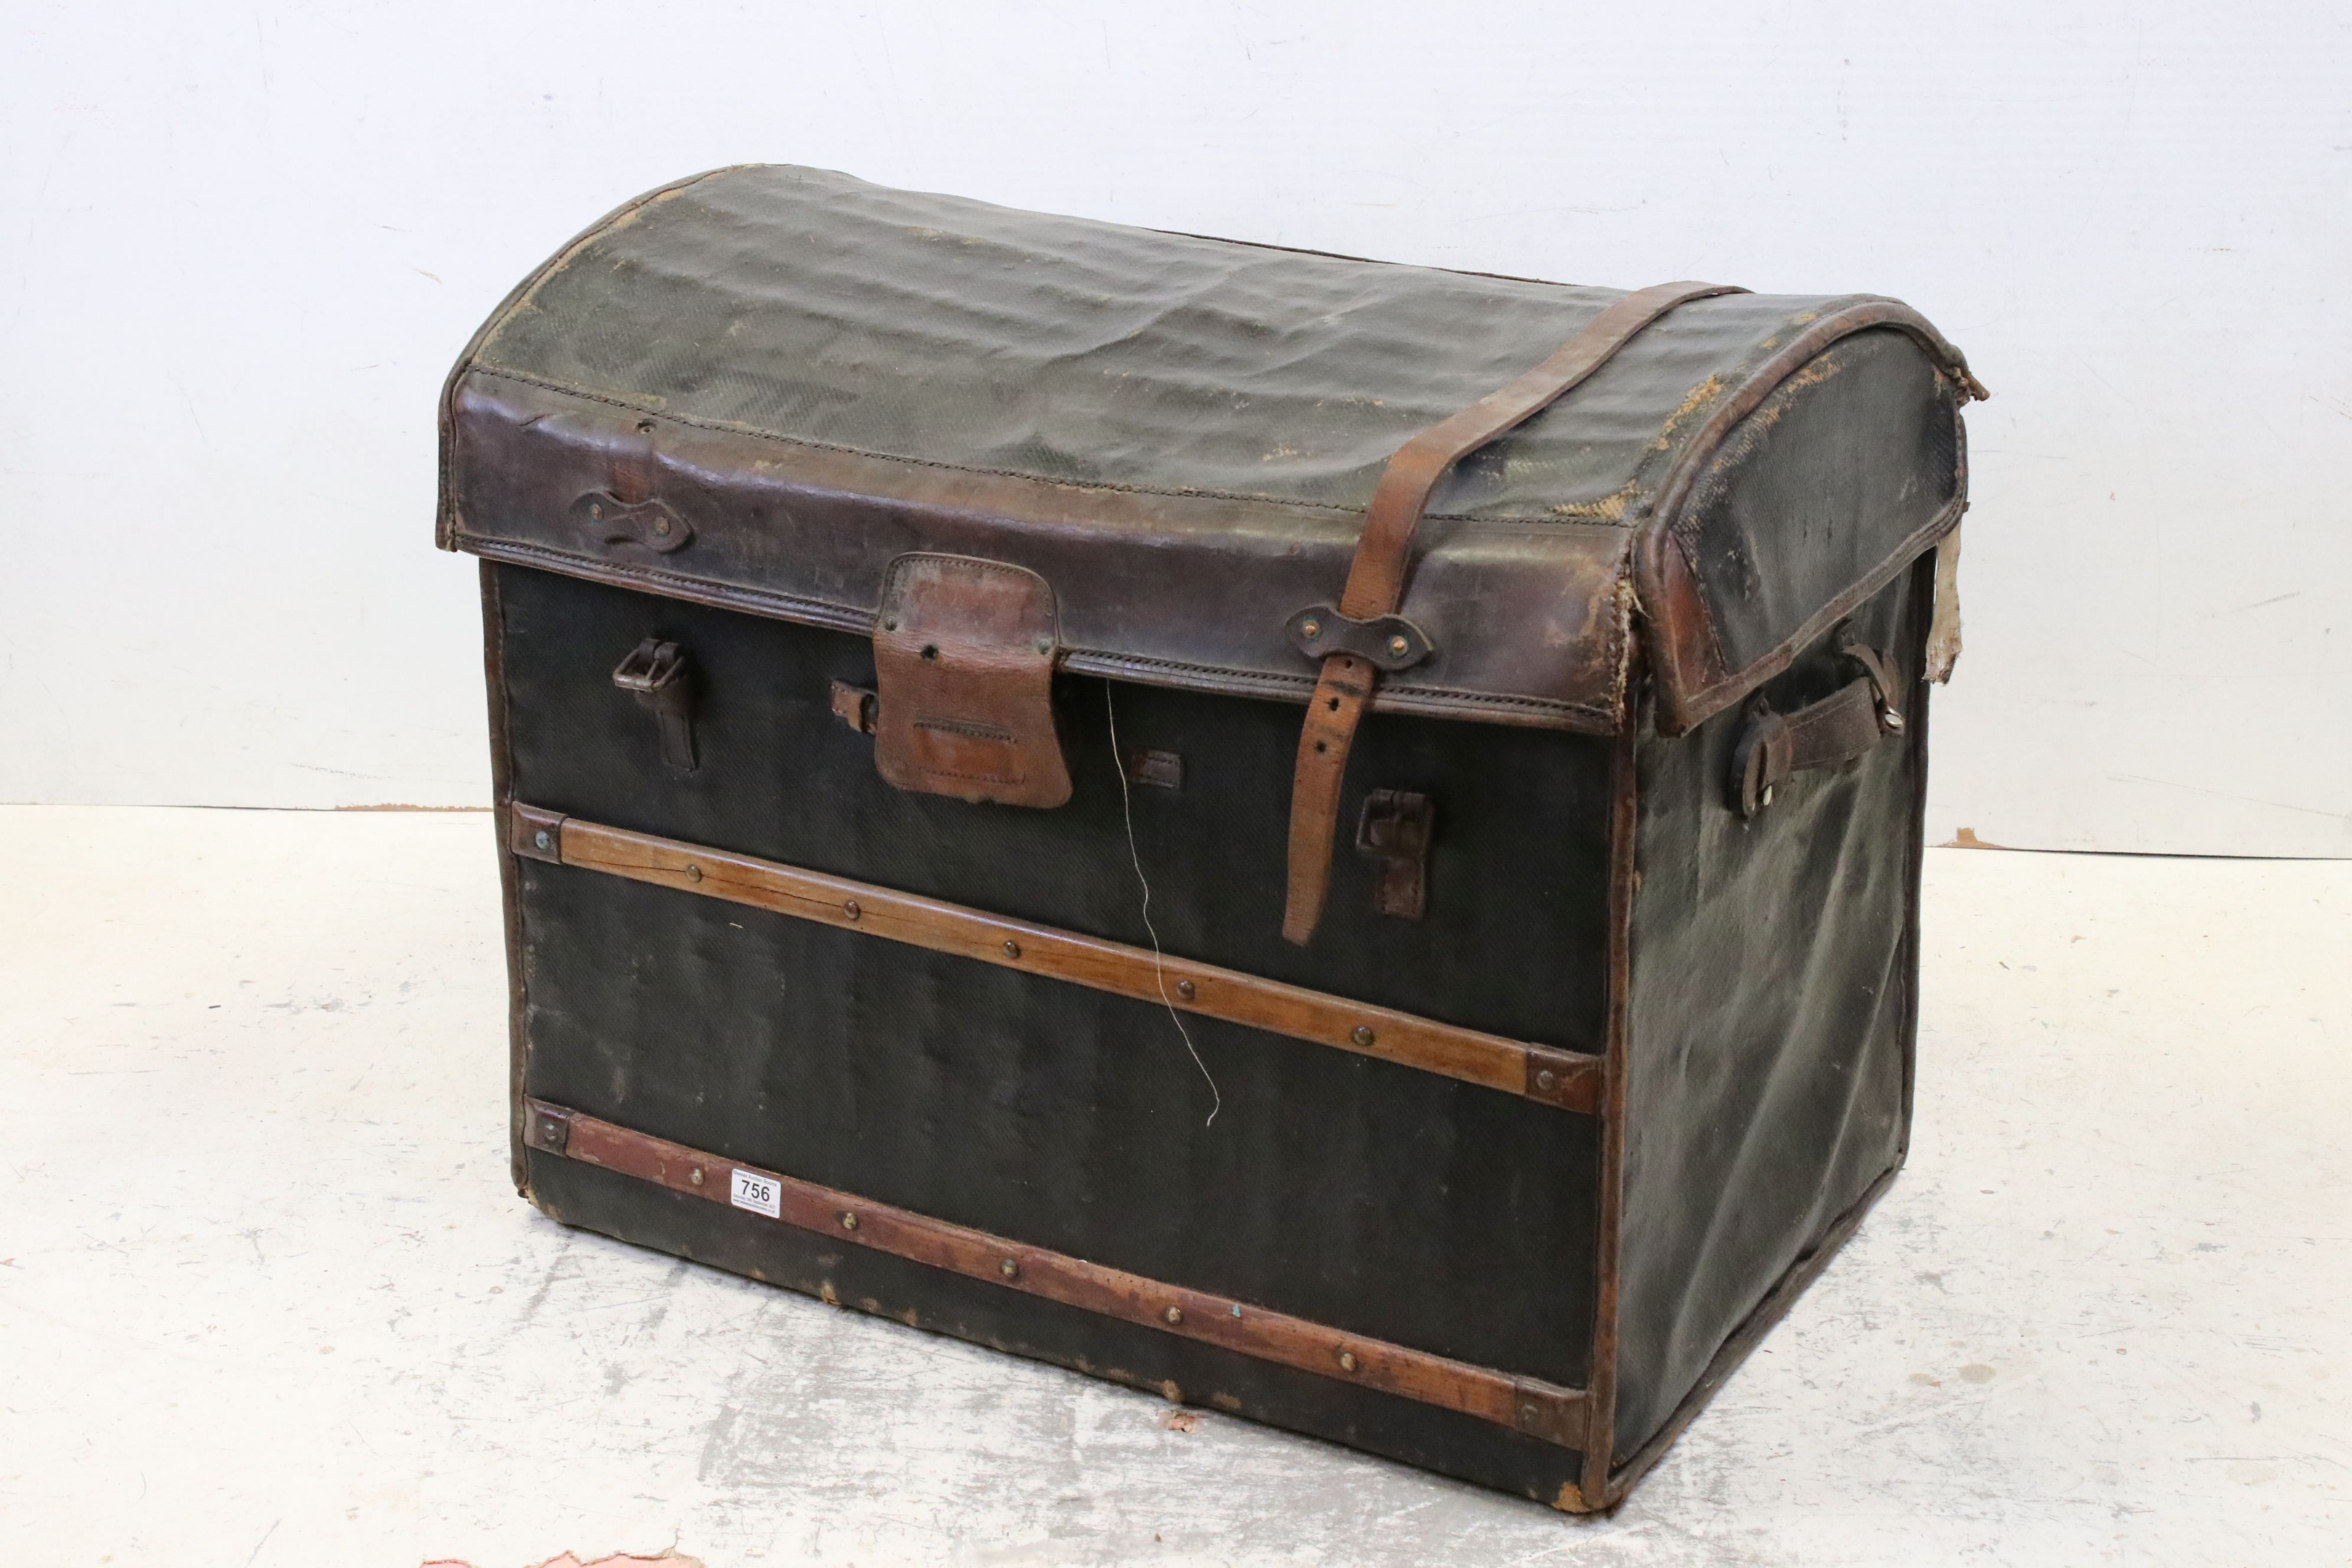 19th century Domed Top Wicker Leather Bound Travelling Trunk with Drop-in Tray, 82cms long x 66cms